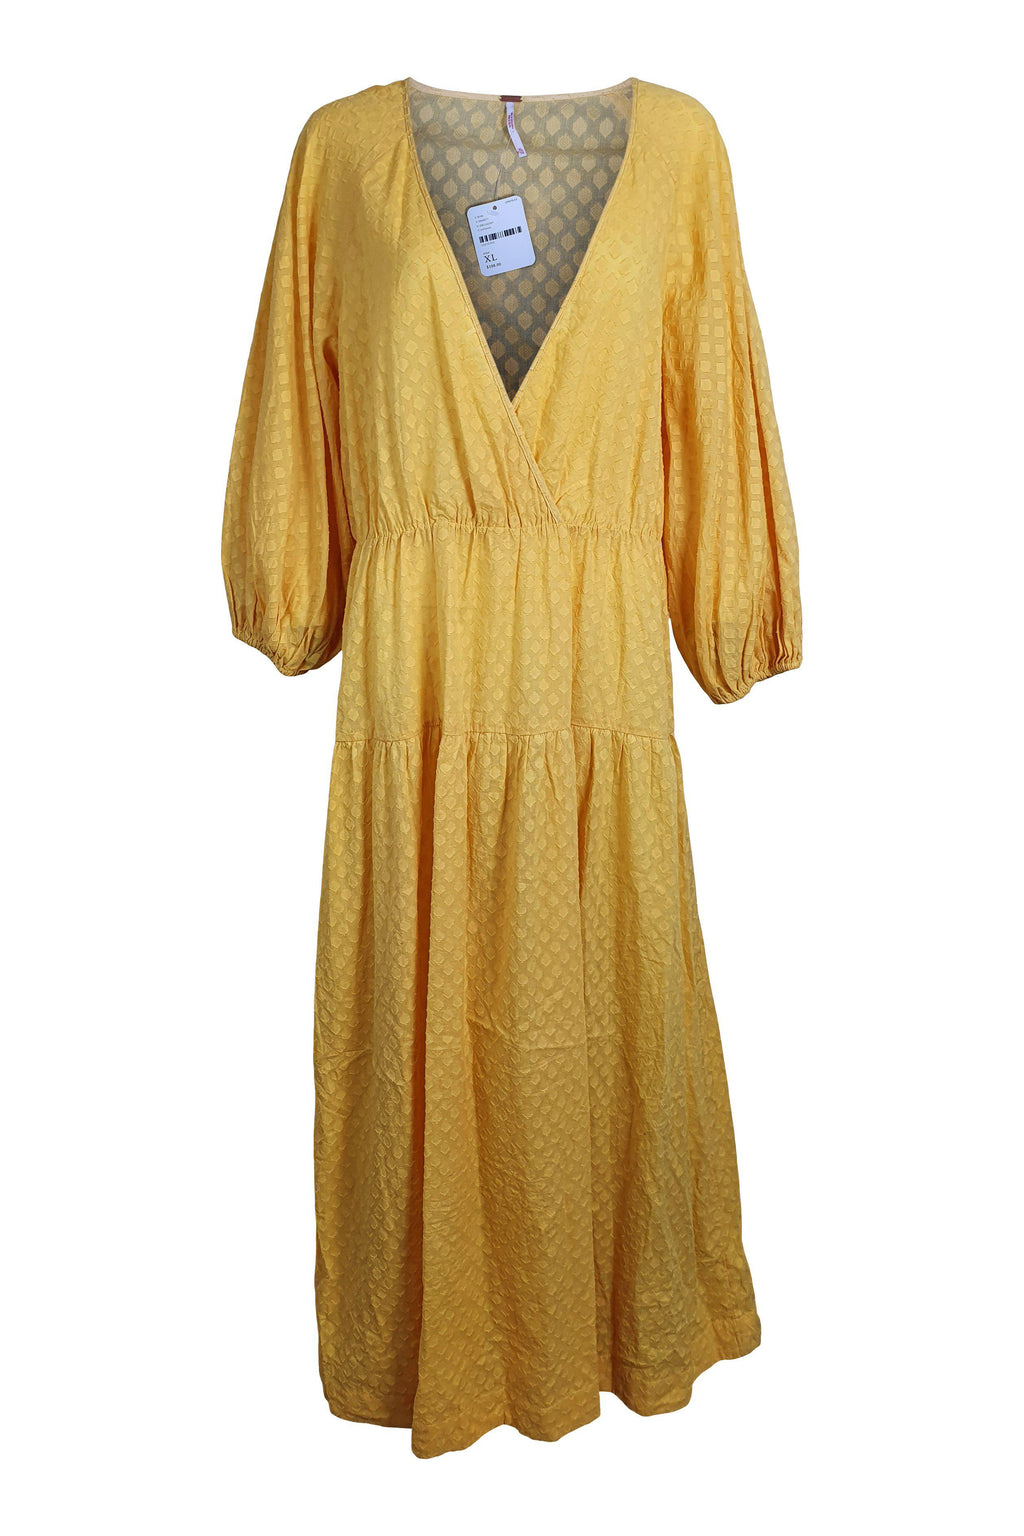 FREE PEOPLE Yellow Cotton Dot Maxi Dress (XL)-The Freperie